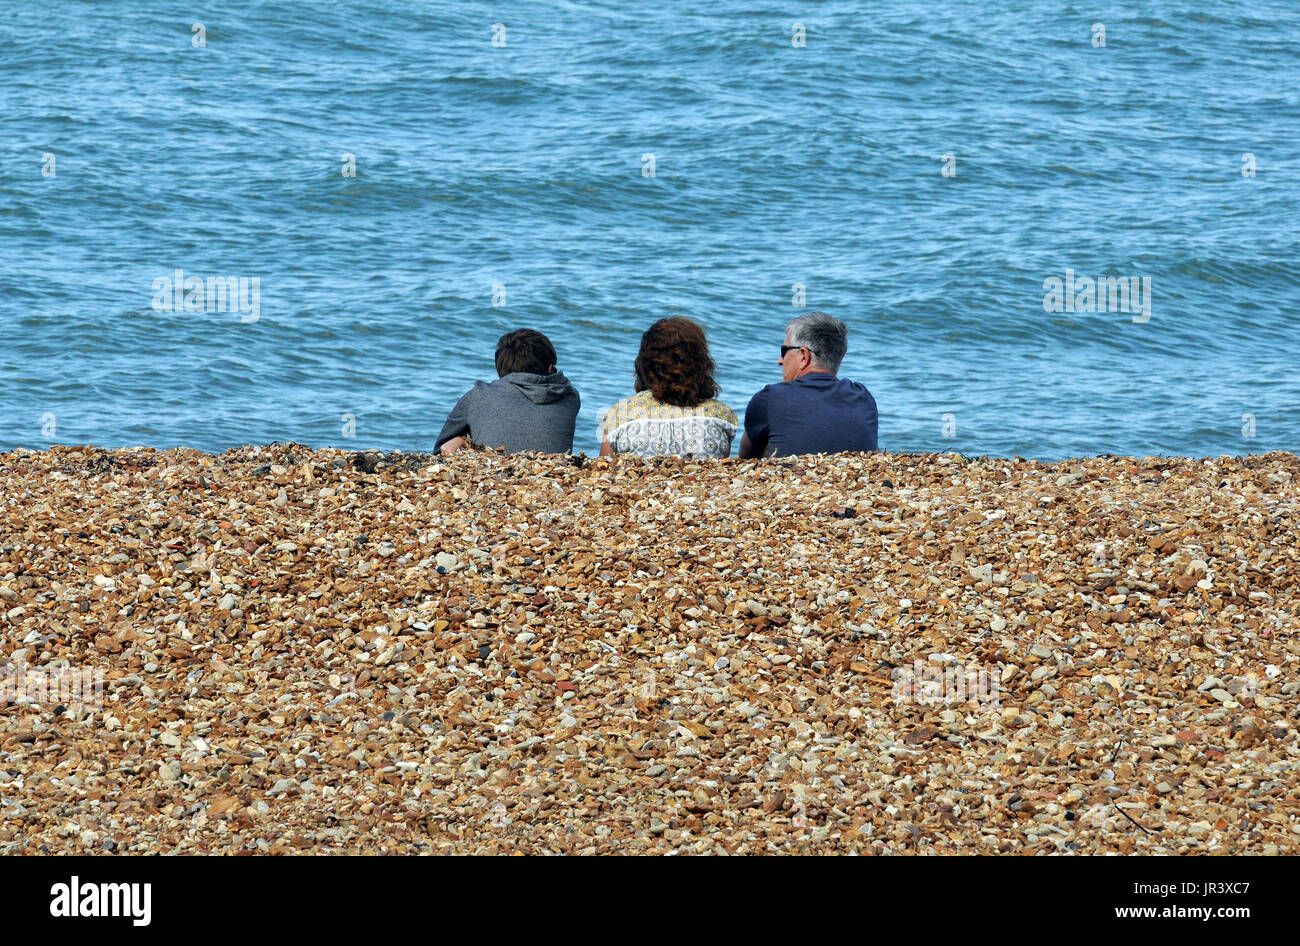 a family sitting on a stony beach at the seaside looking out to sea and in conversation with each other sea front pebbles and summer holidays families - Stock Image